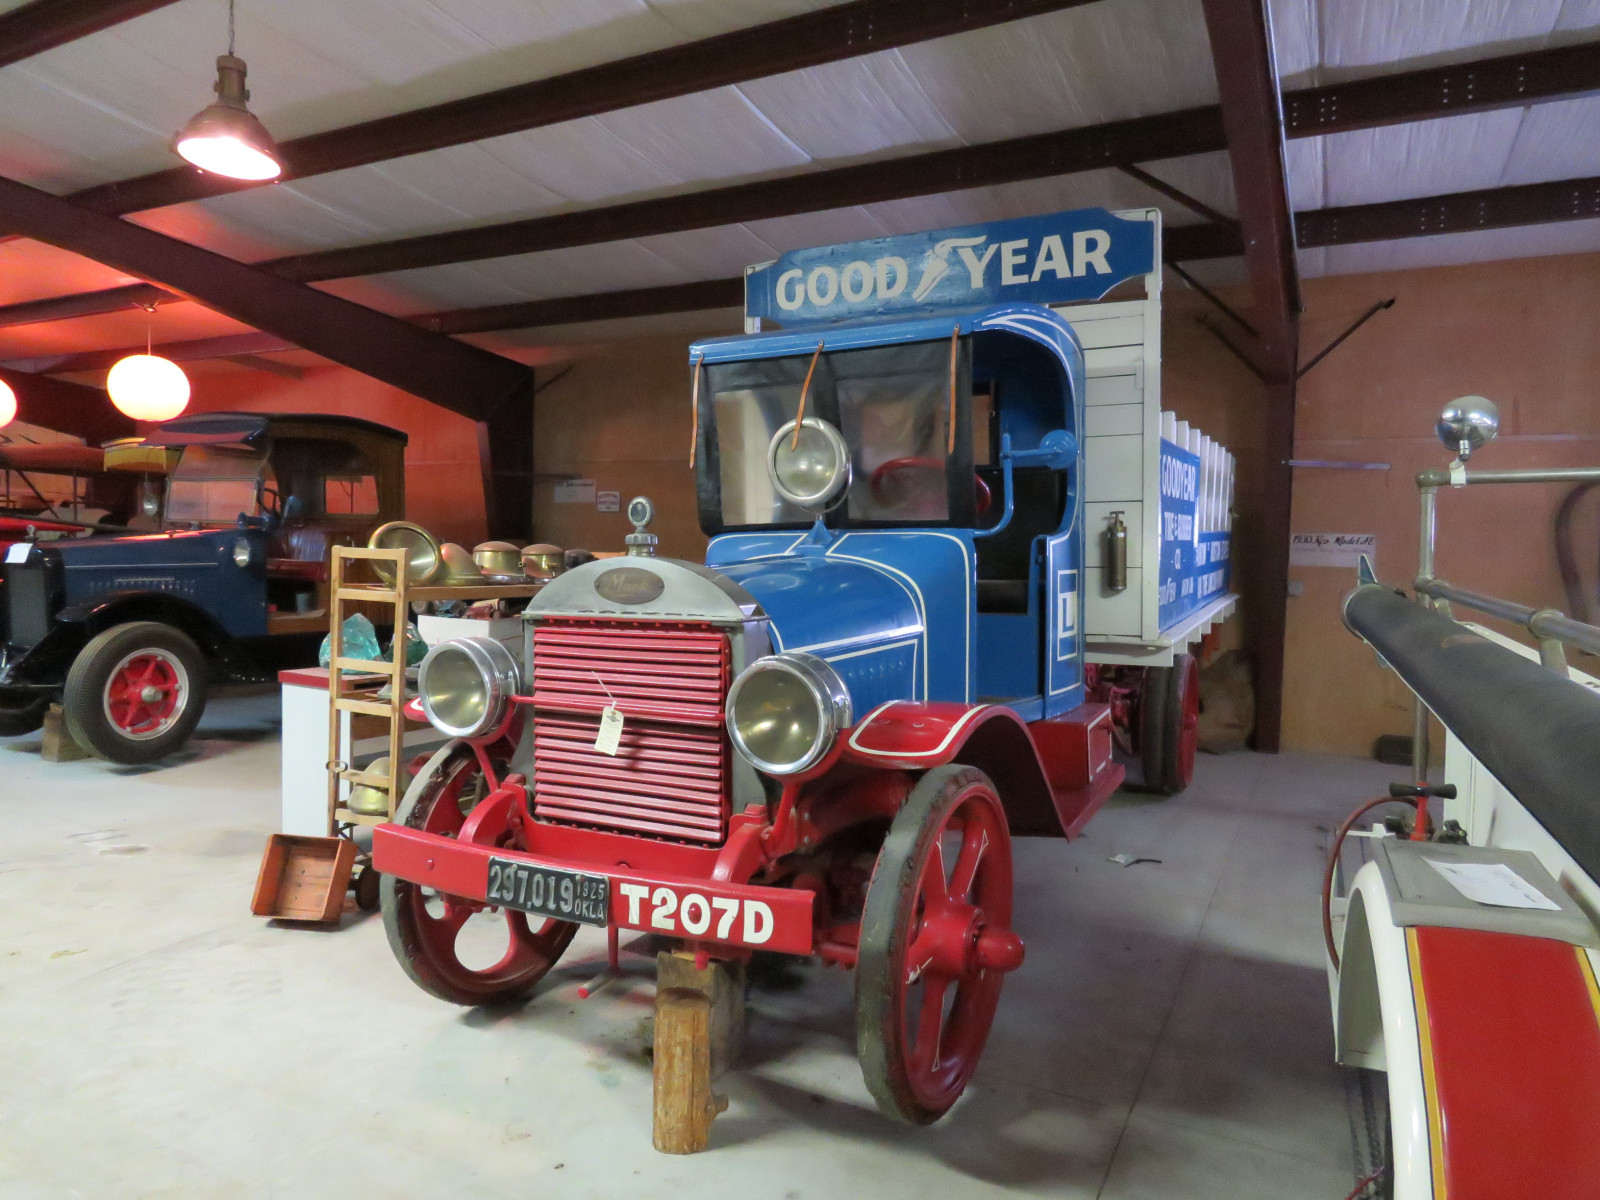 Rare 1925 Mack Model AB 2 Ton Truck with Goodyear Advertising - Image 1